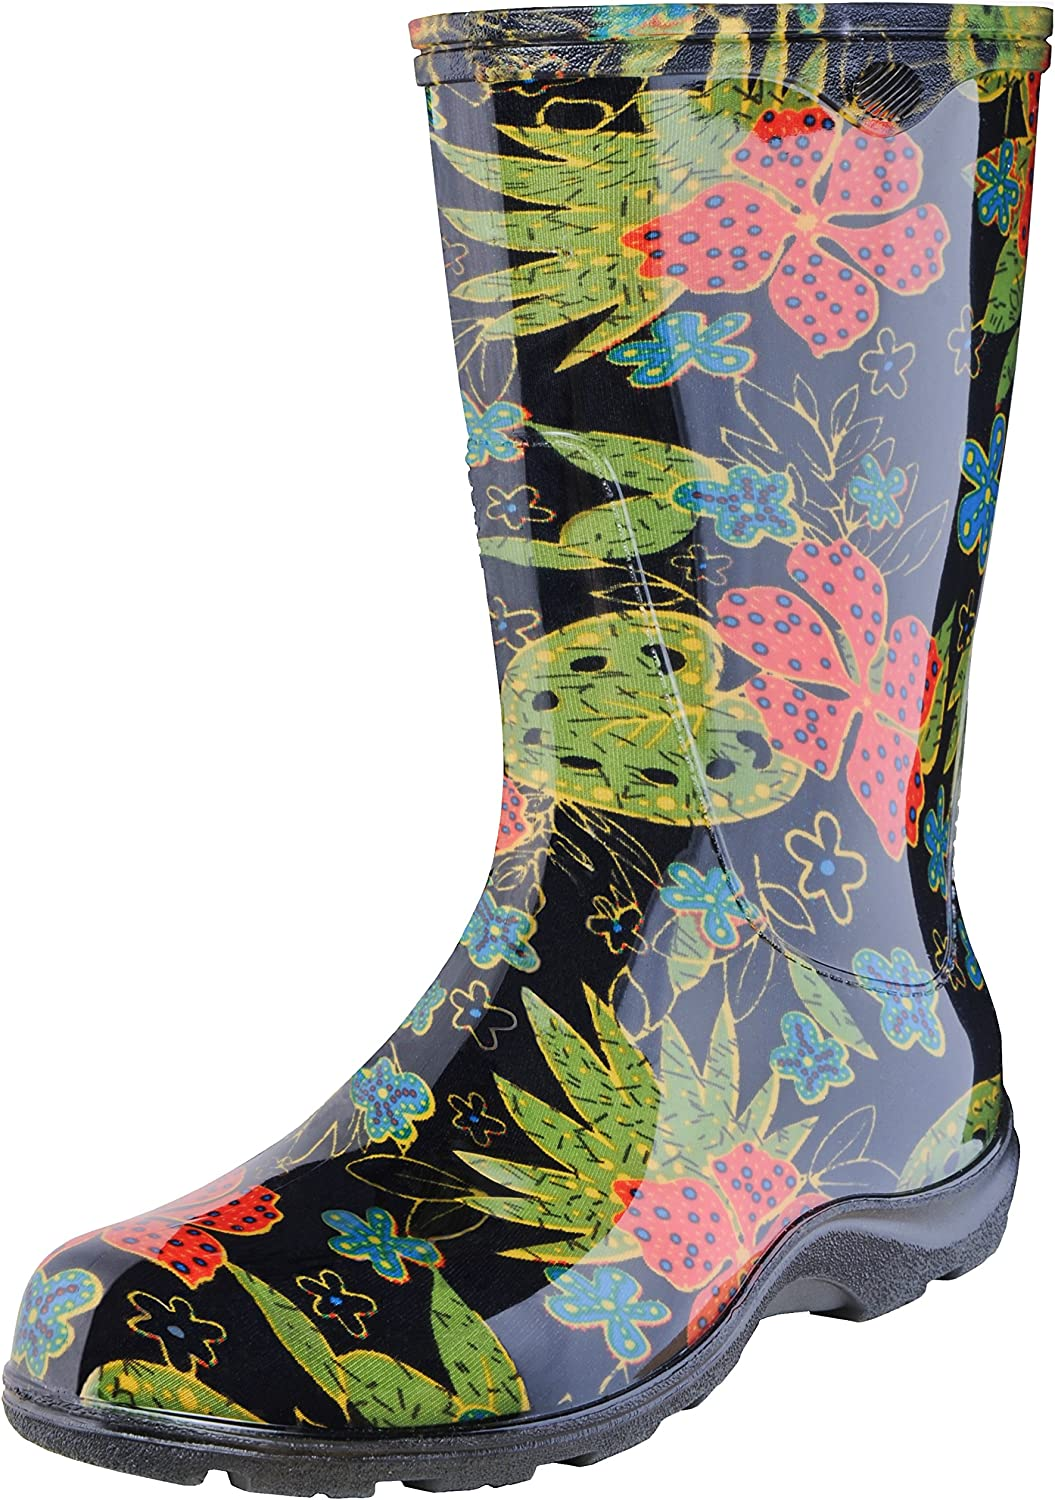 Principle Plastics Sloggers Women's Rain and Garden Boot with All-Day-Comfort Insole, Midsummer Black Print-Wo's Size 8-Style 5002BK08